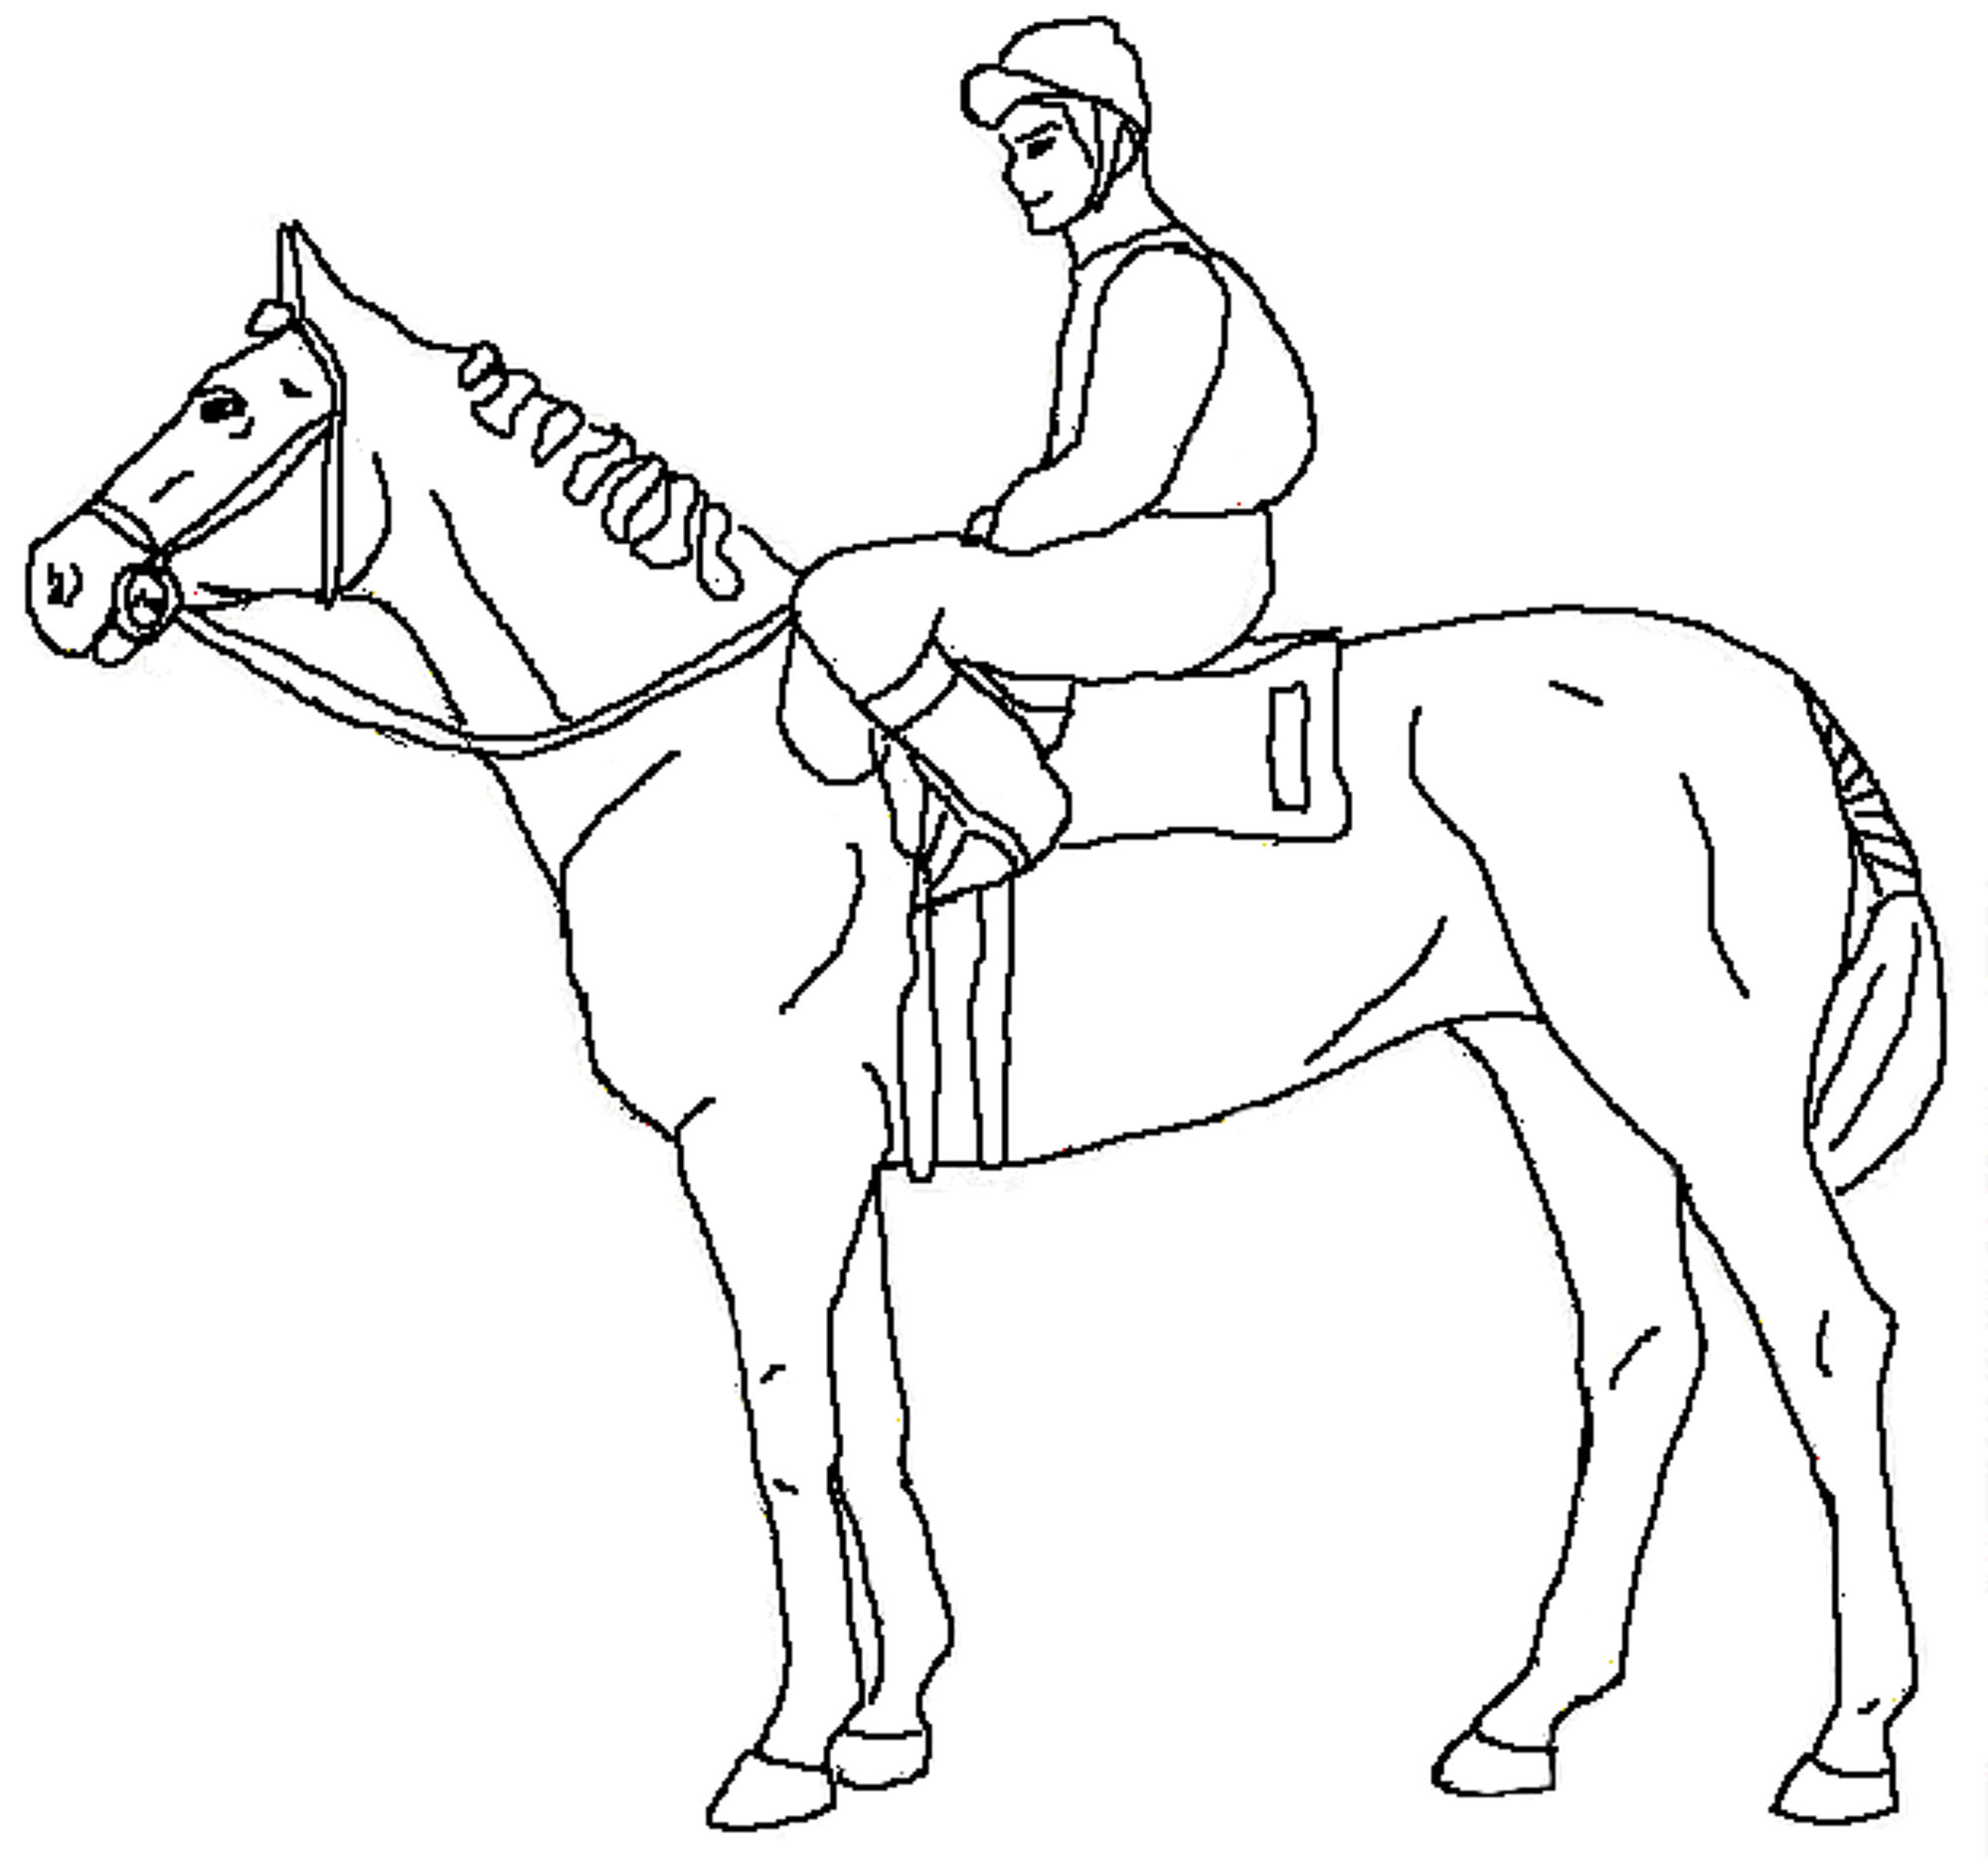 coloring pages of horses to print fun horse coloring pages for your kids printable print coloring pages horses to of